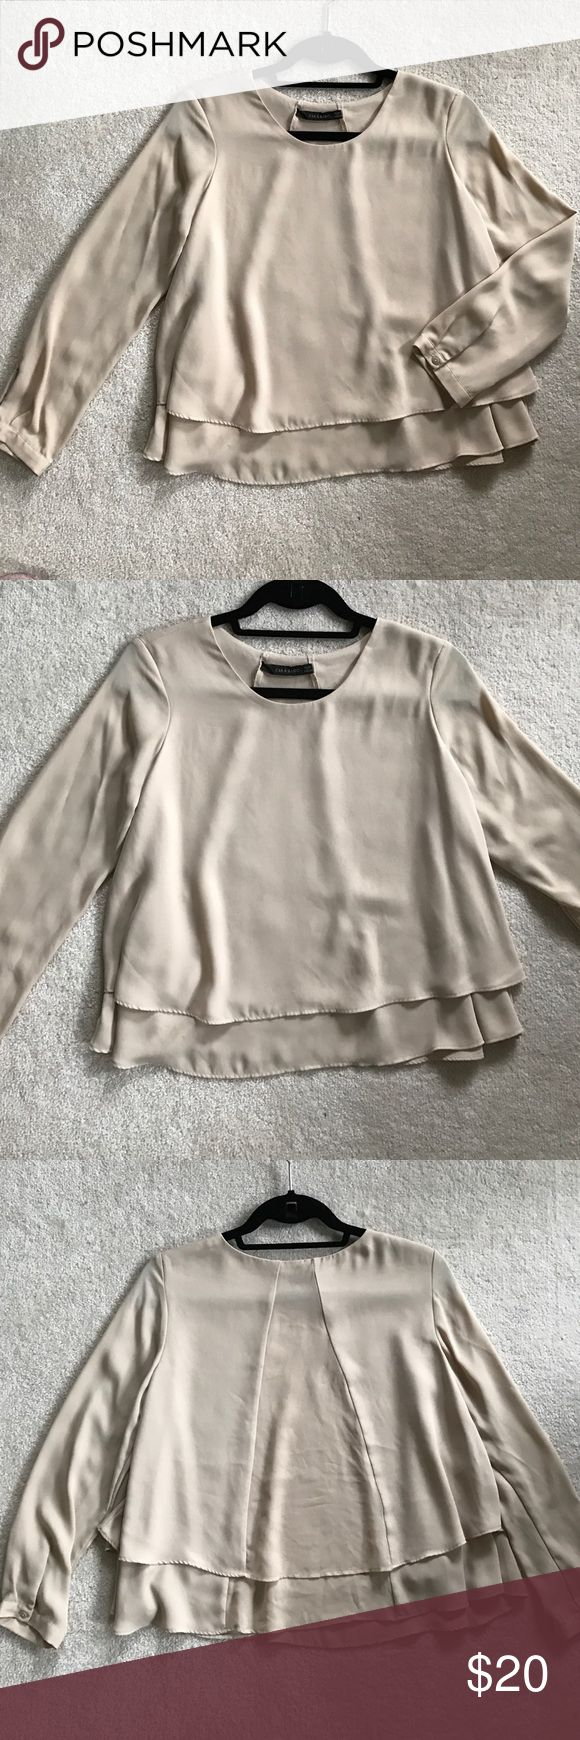 Zara beige long sleeve top. Long sleeve top that fits slightly cropped with cute back detail (sheer panel in back to show a little sexiness.) Pair with black leather skinny jeans or leggings. Zara Tops Blouses